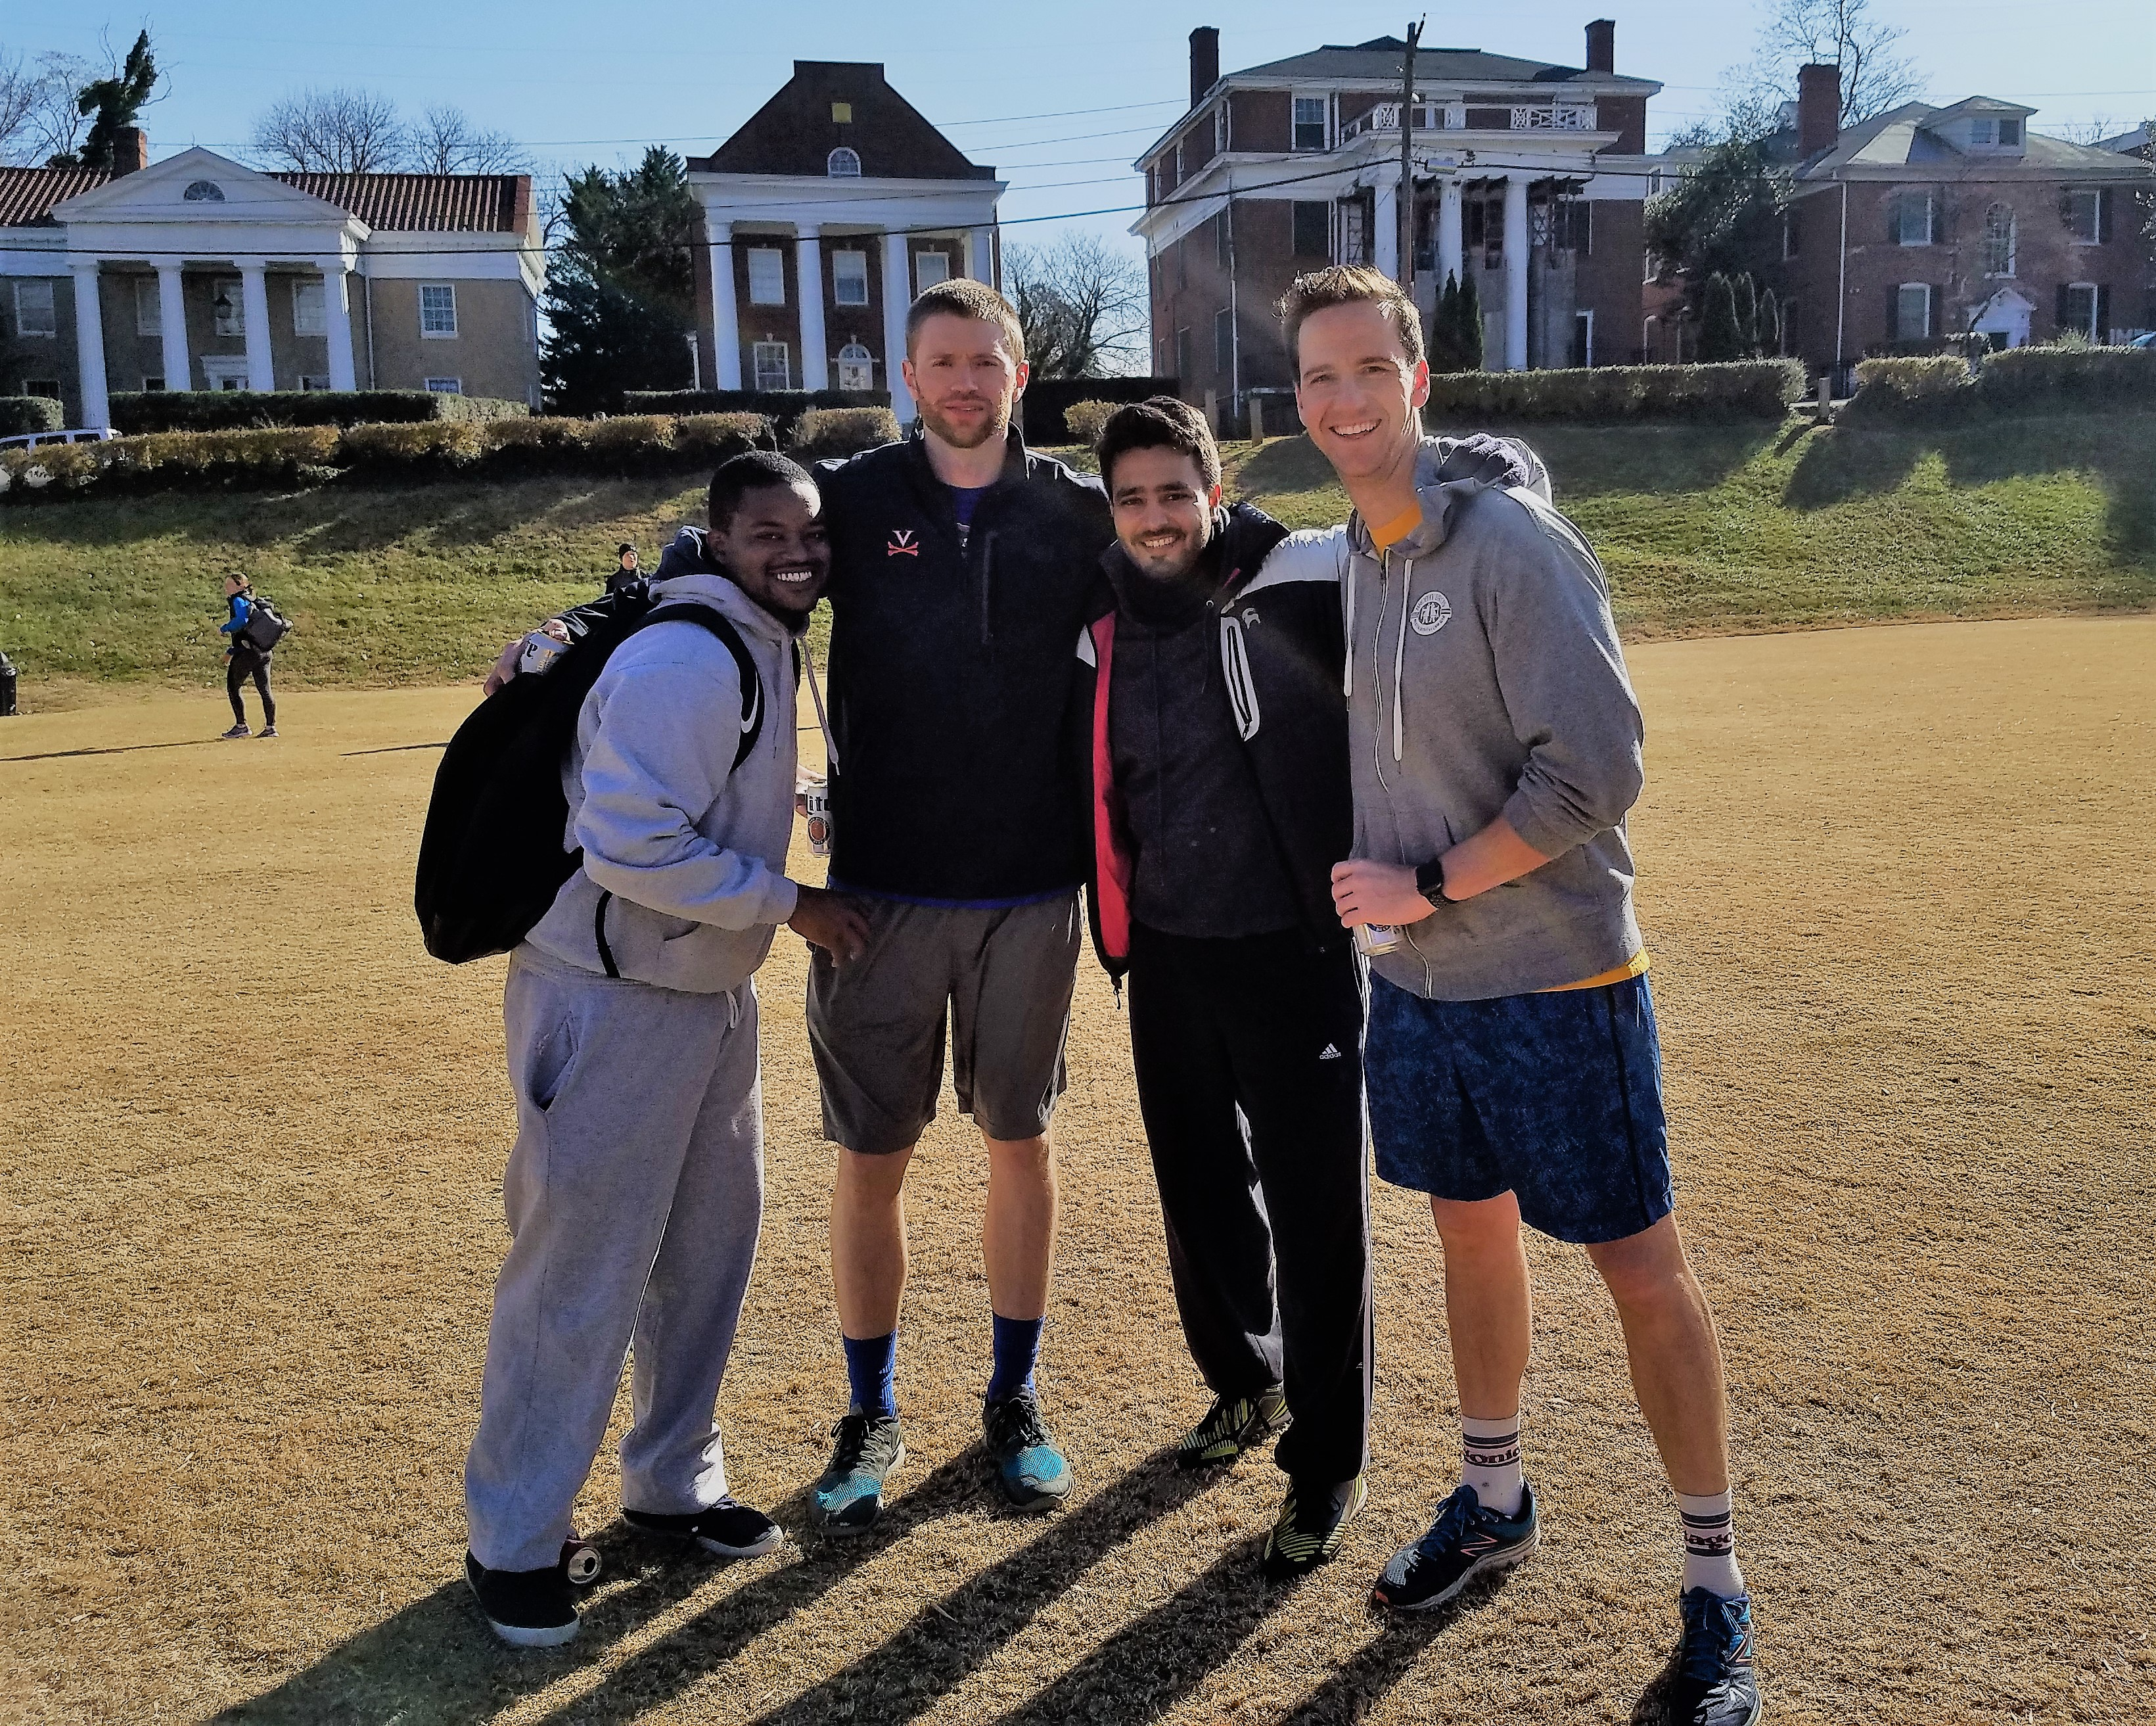 Kevin Laroche, Max Hoggard, Victor Anciano, and Eric Larson after the 2017 Turkey Bowl